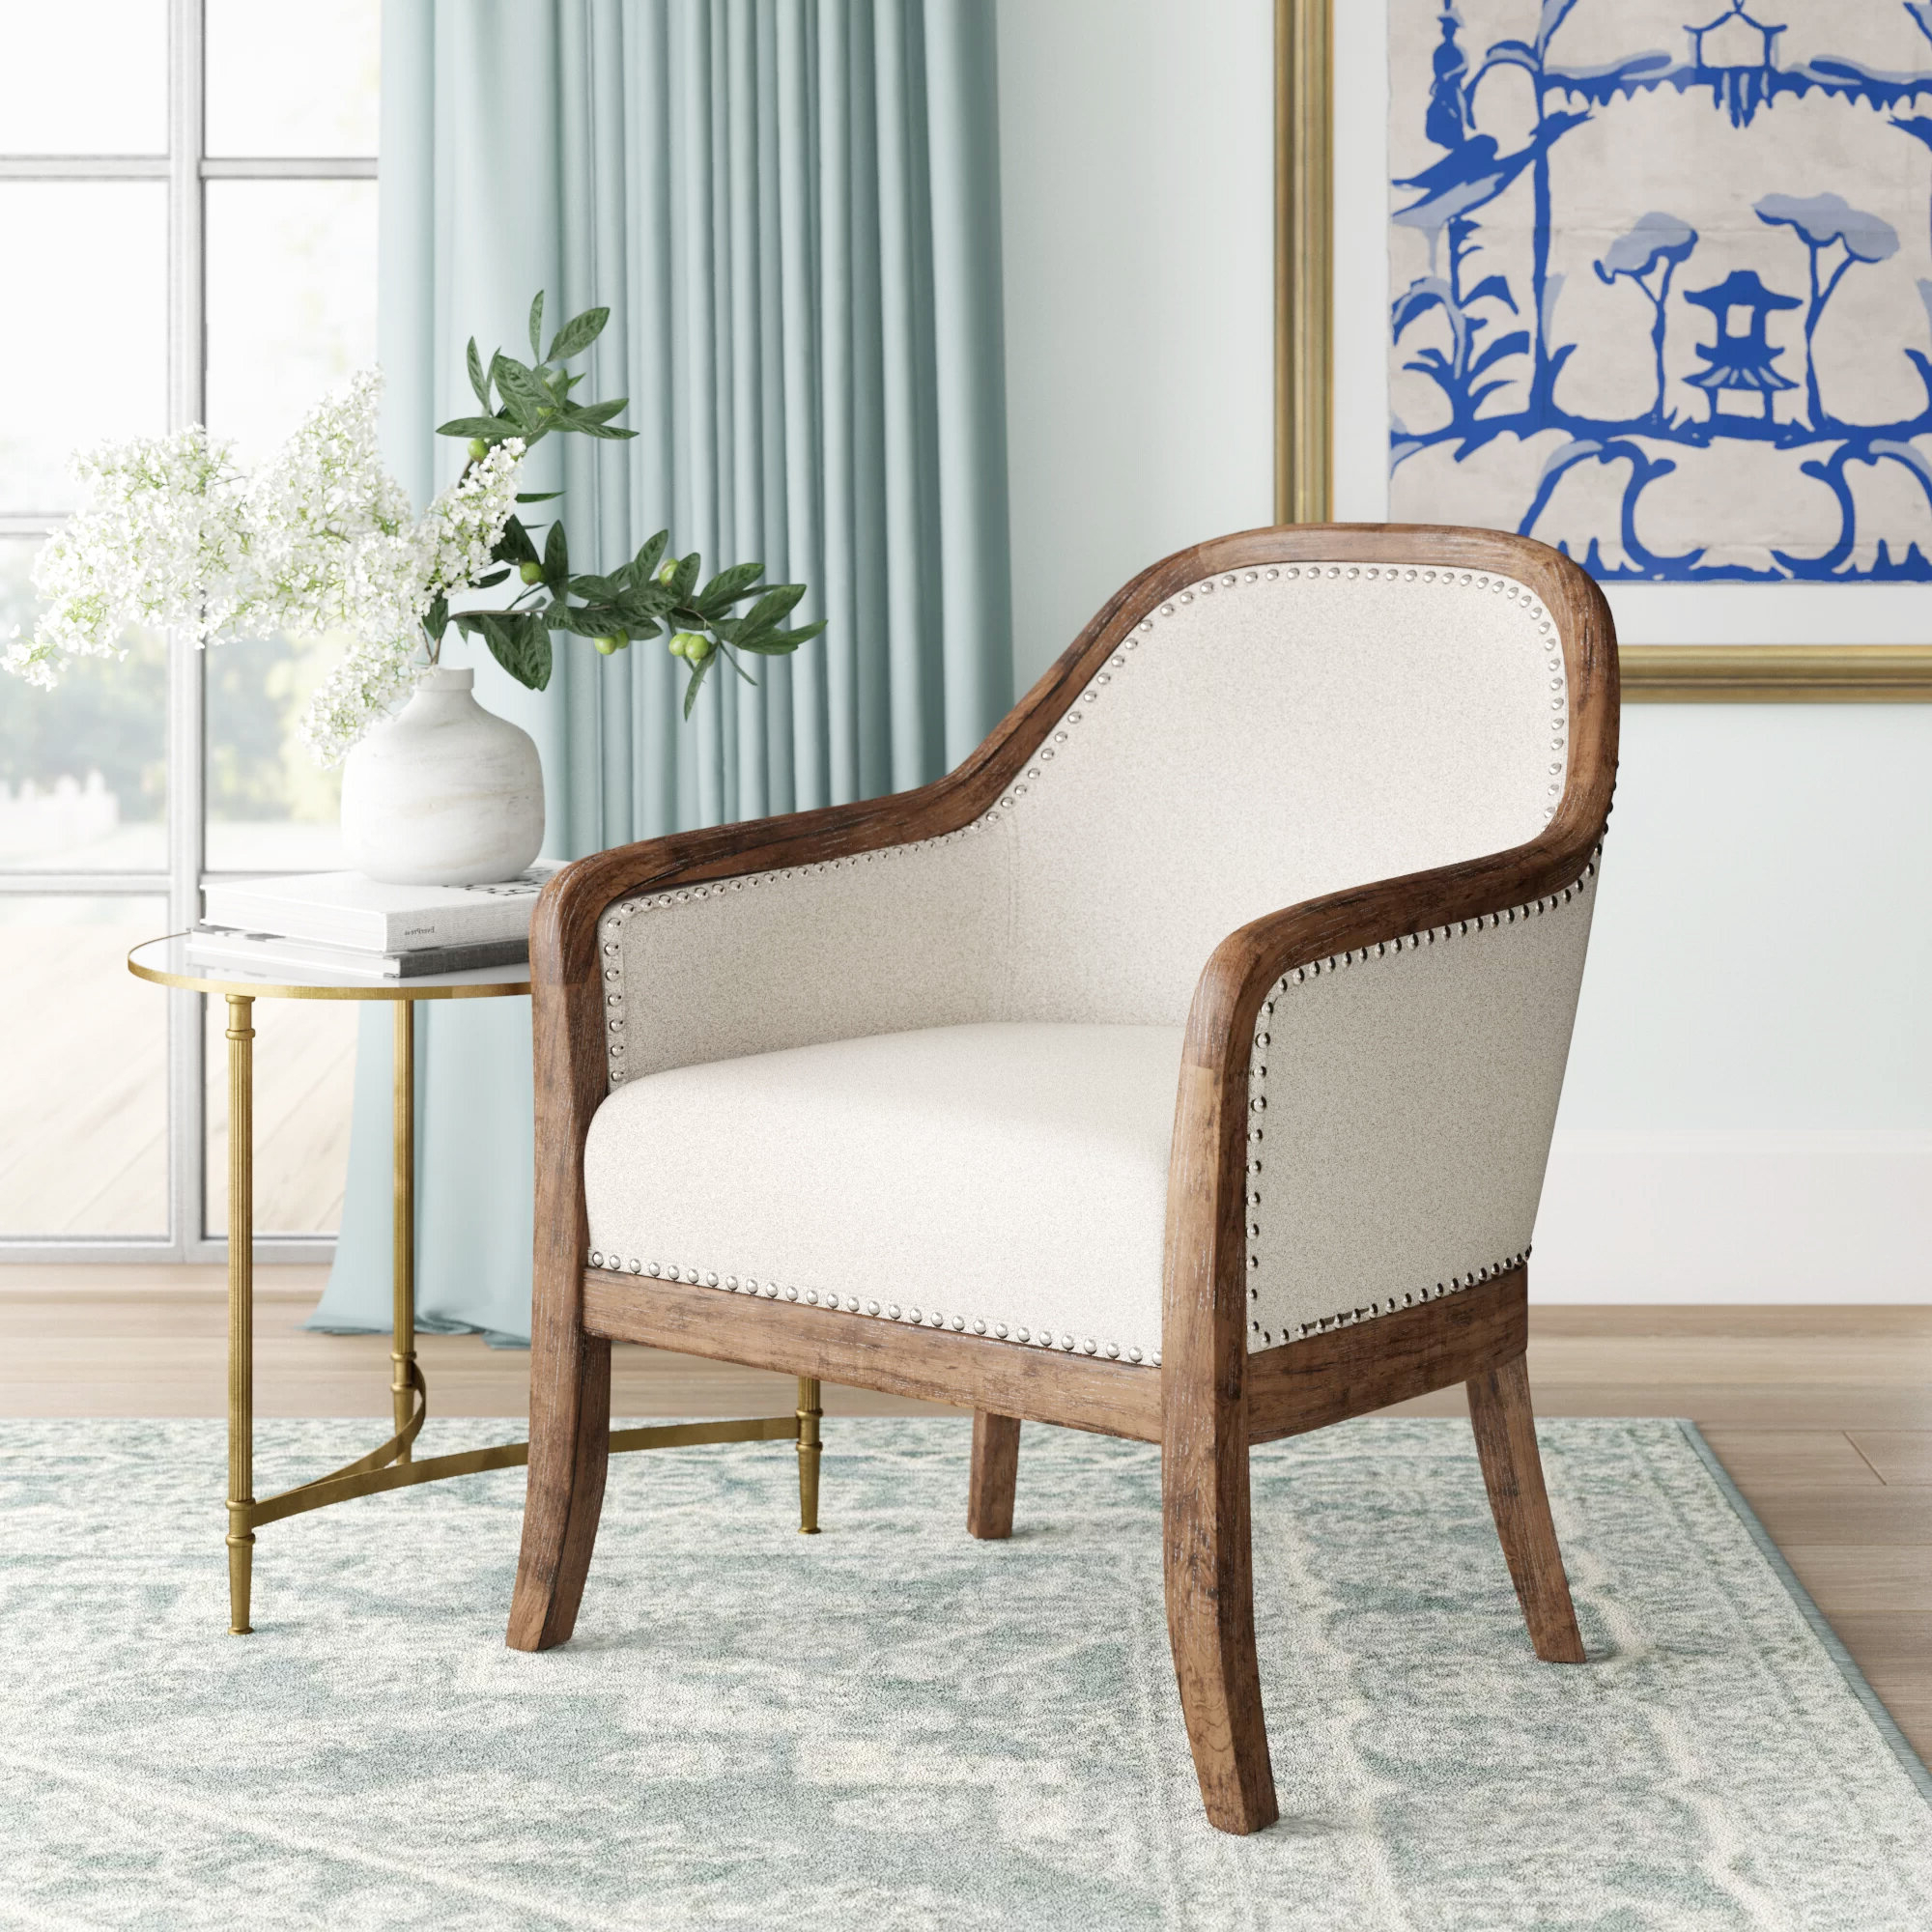 2020 Briseno Barrel Chairs In Hillary Barrel Chair & Reviews (View 2 of 20)